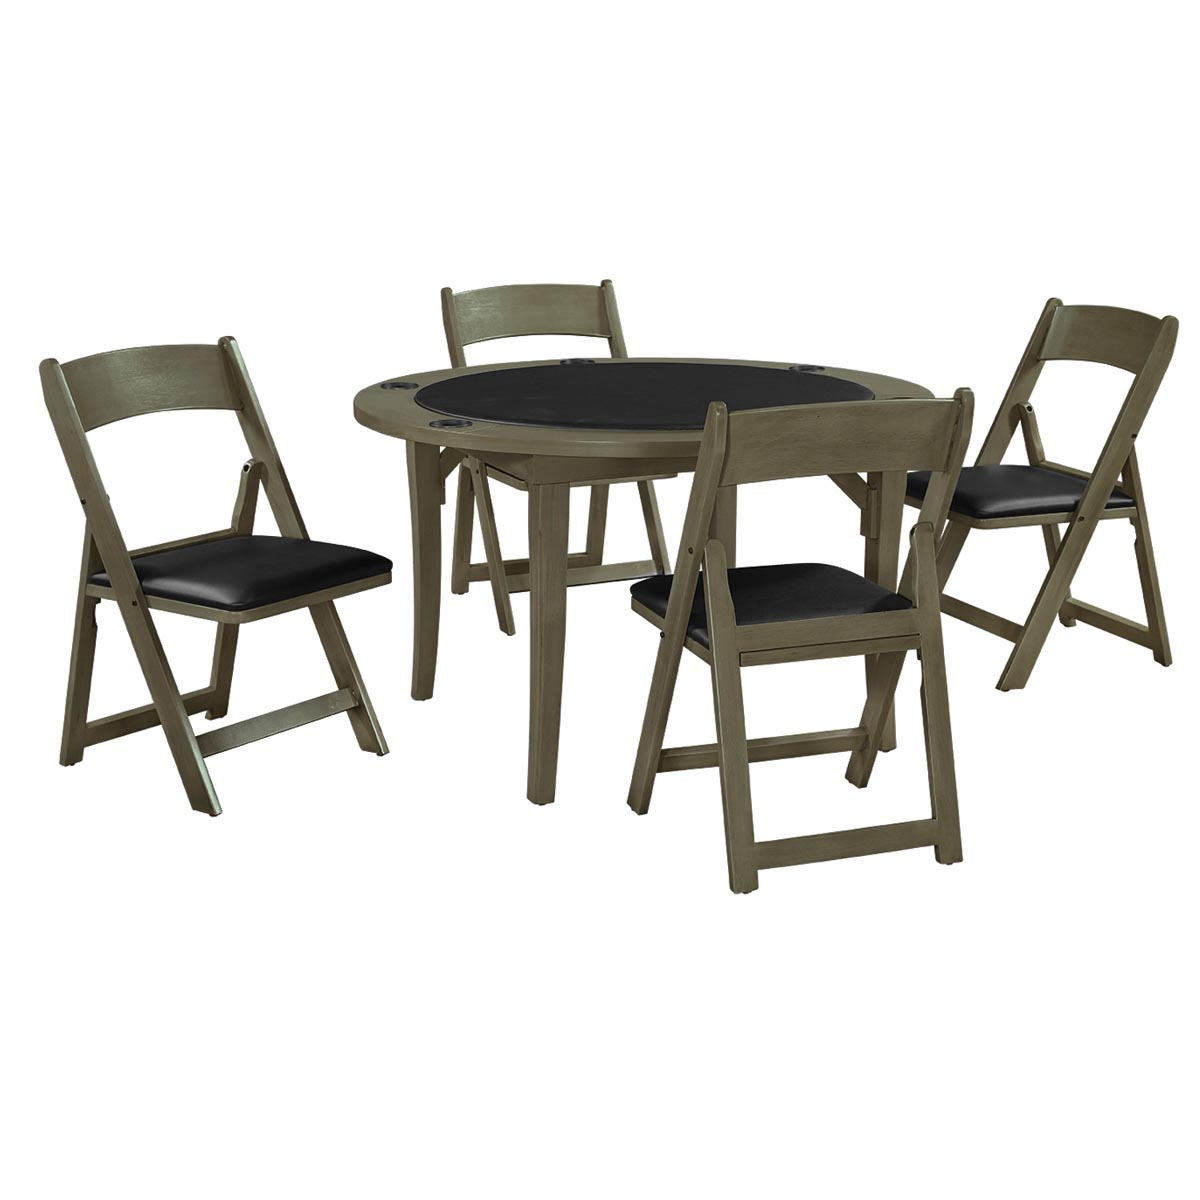 Slate Finish with Optional Chairs